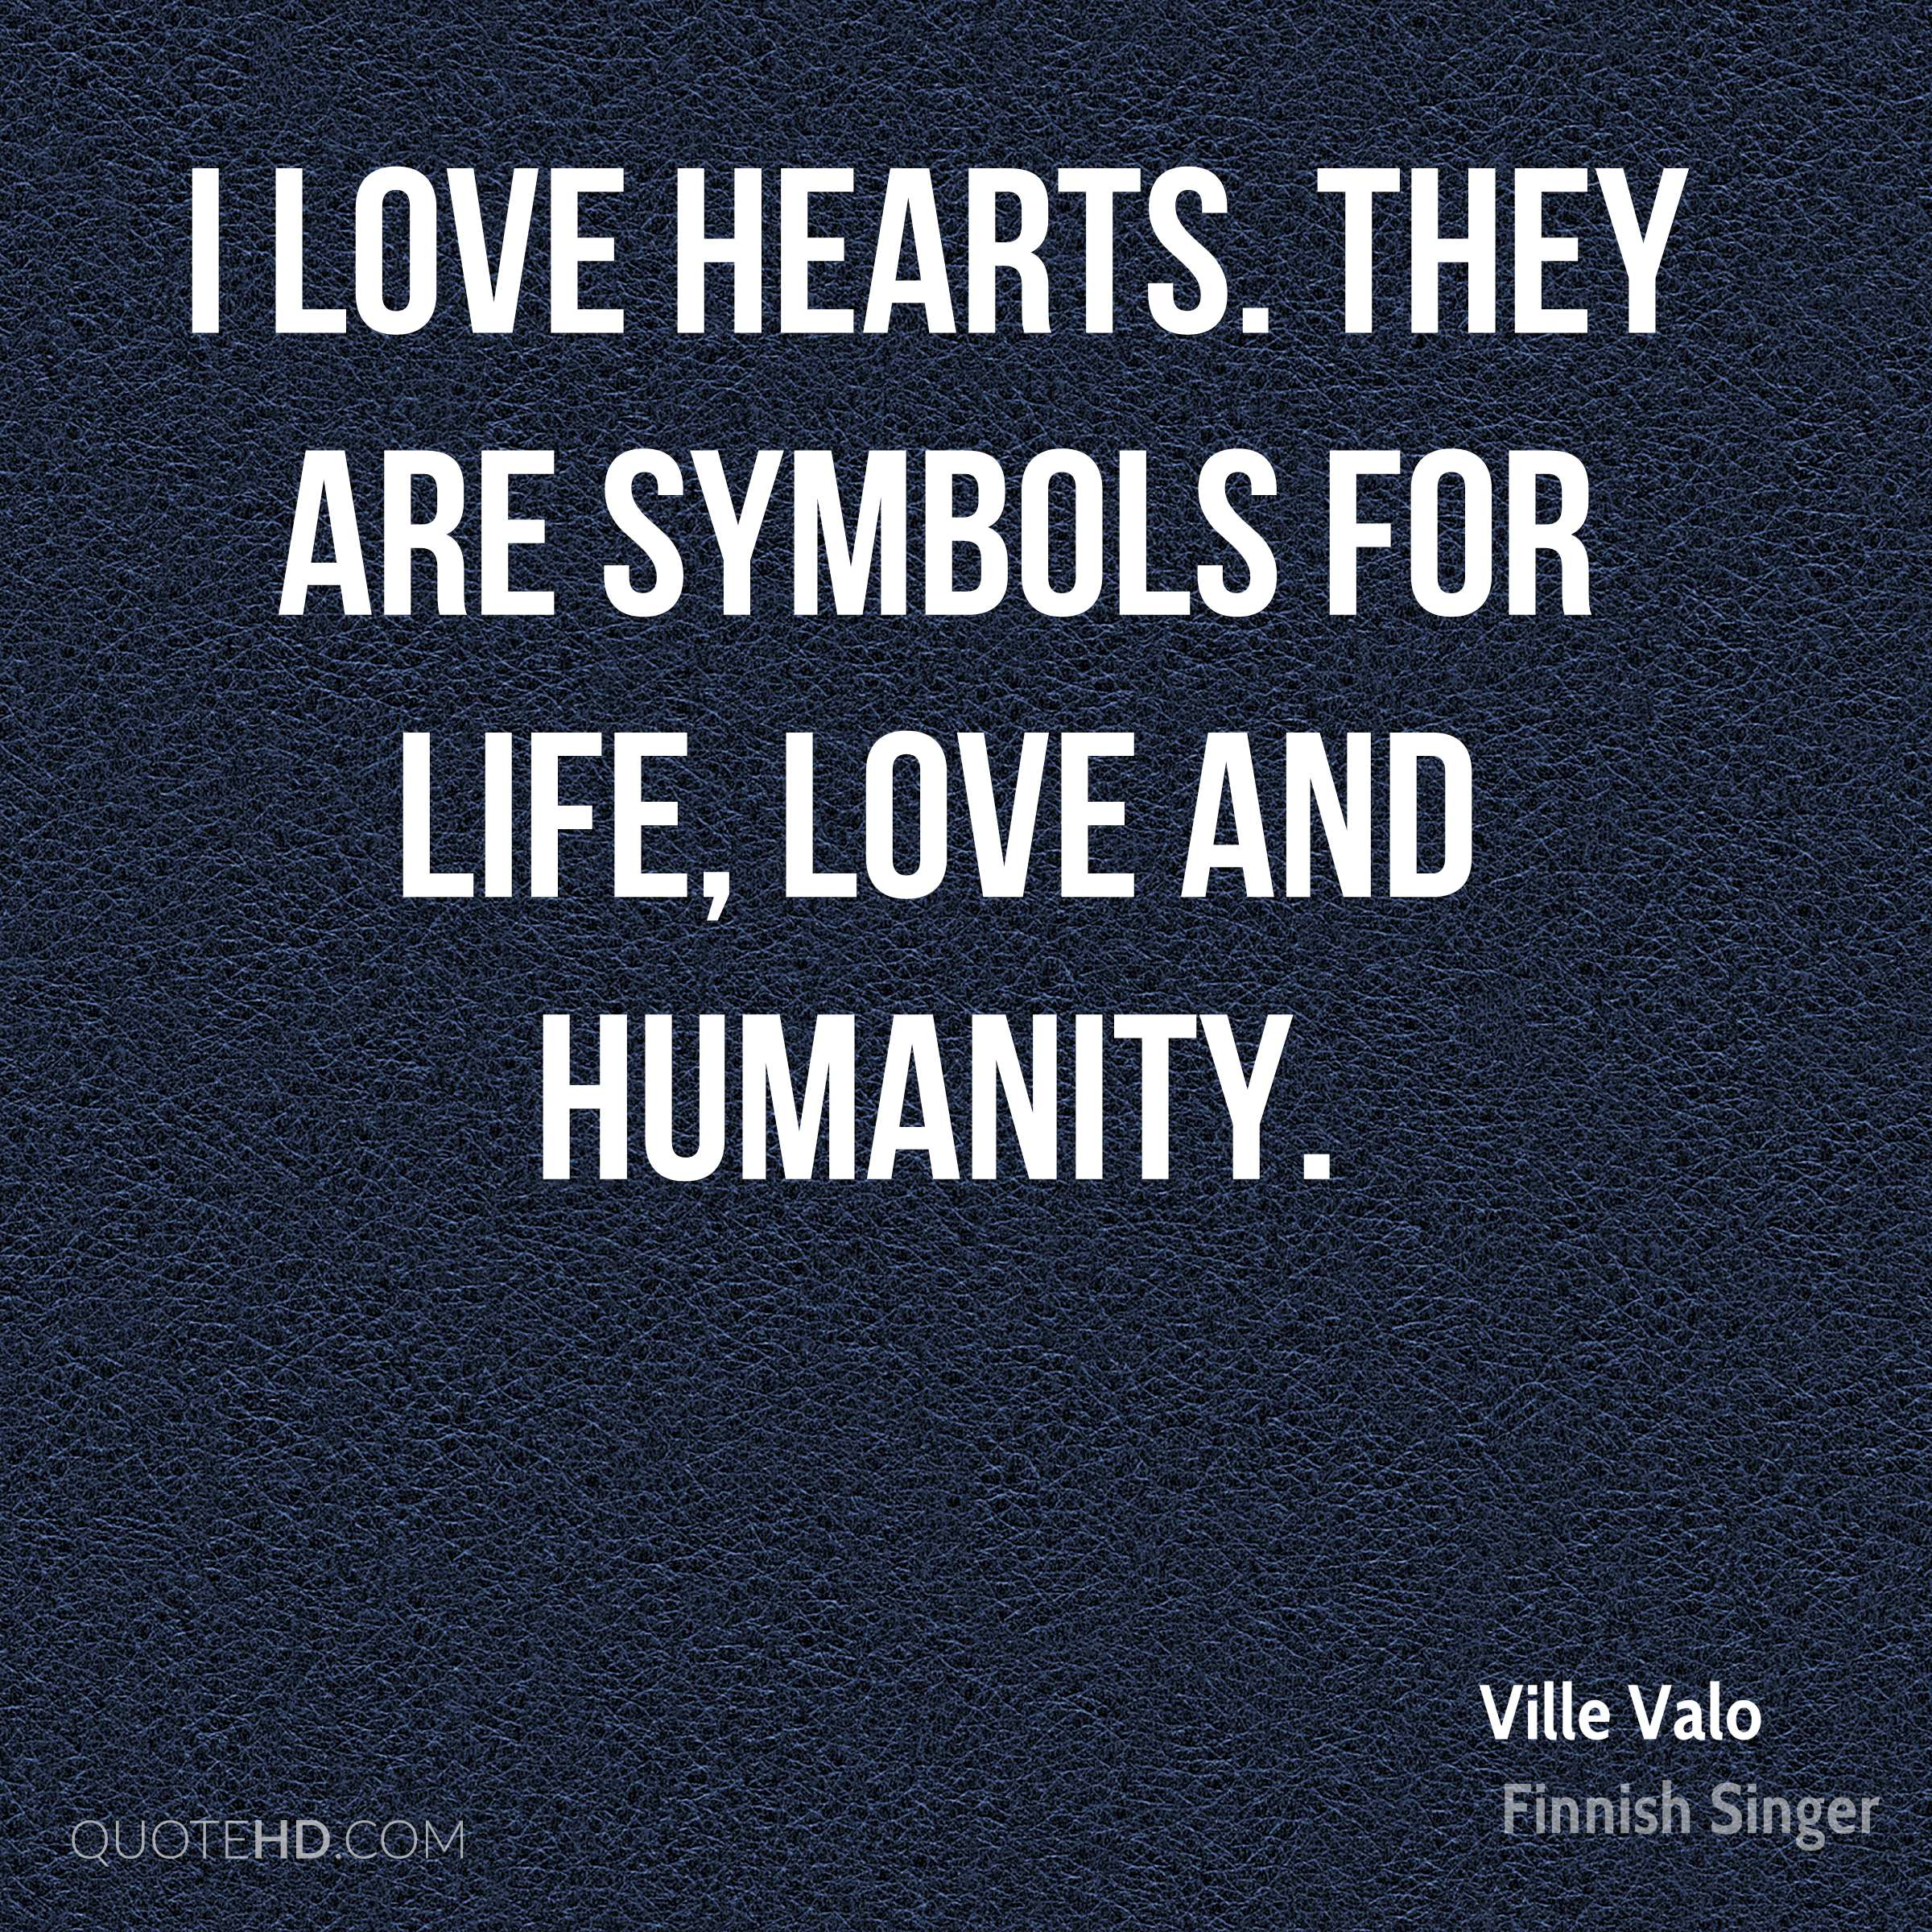 Ville Valo Quotes Quotehd